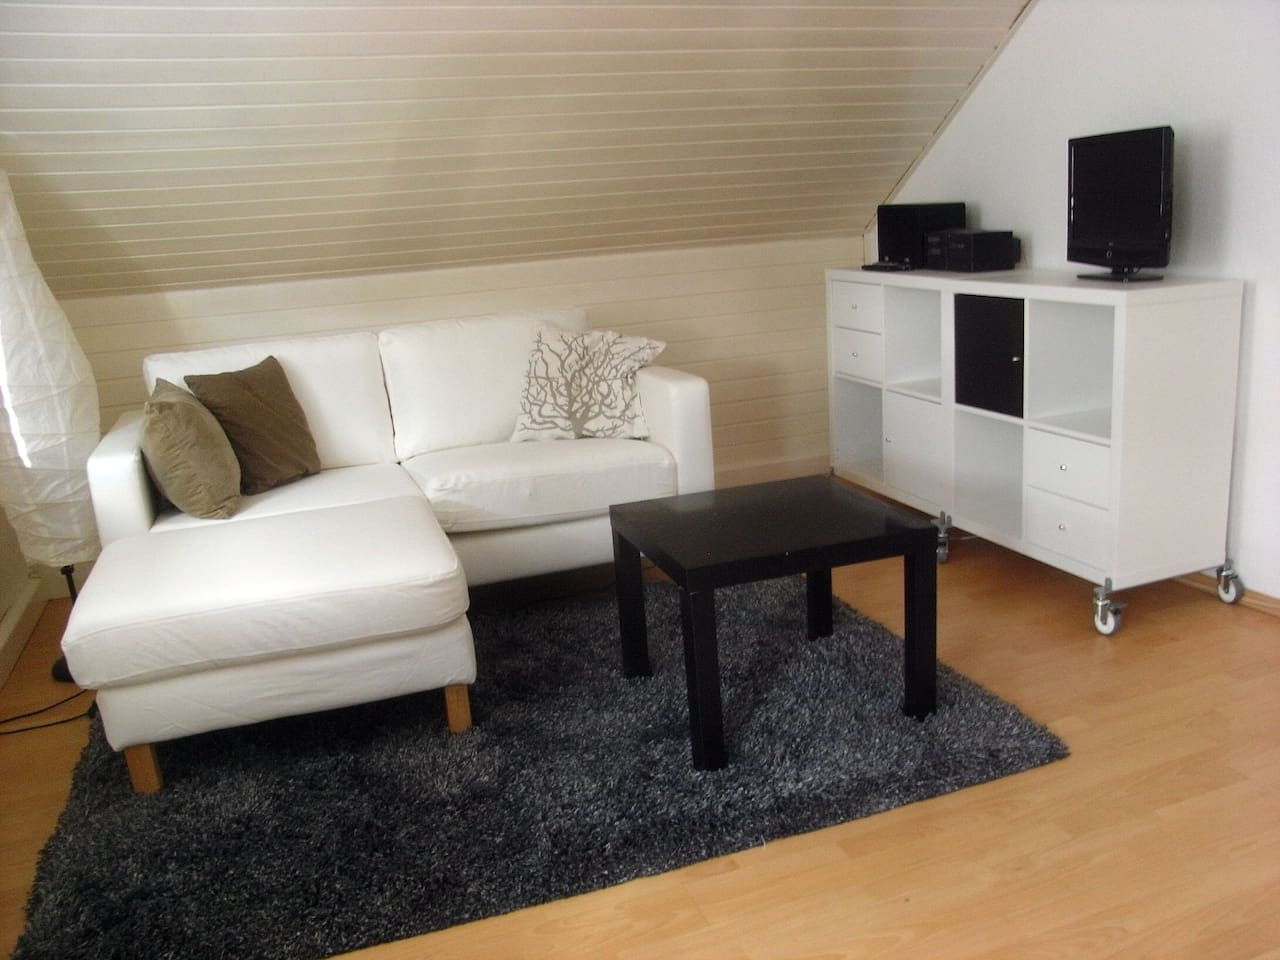 Couchecke mit Sideboards